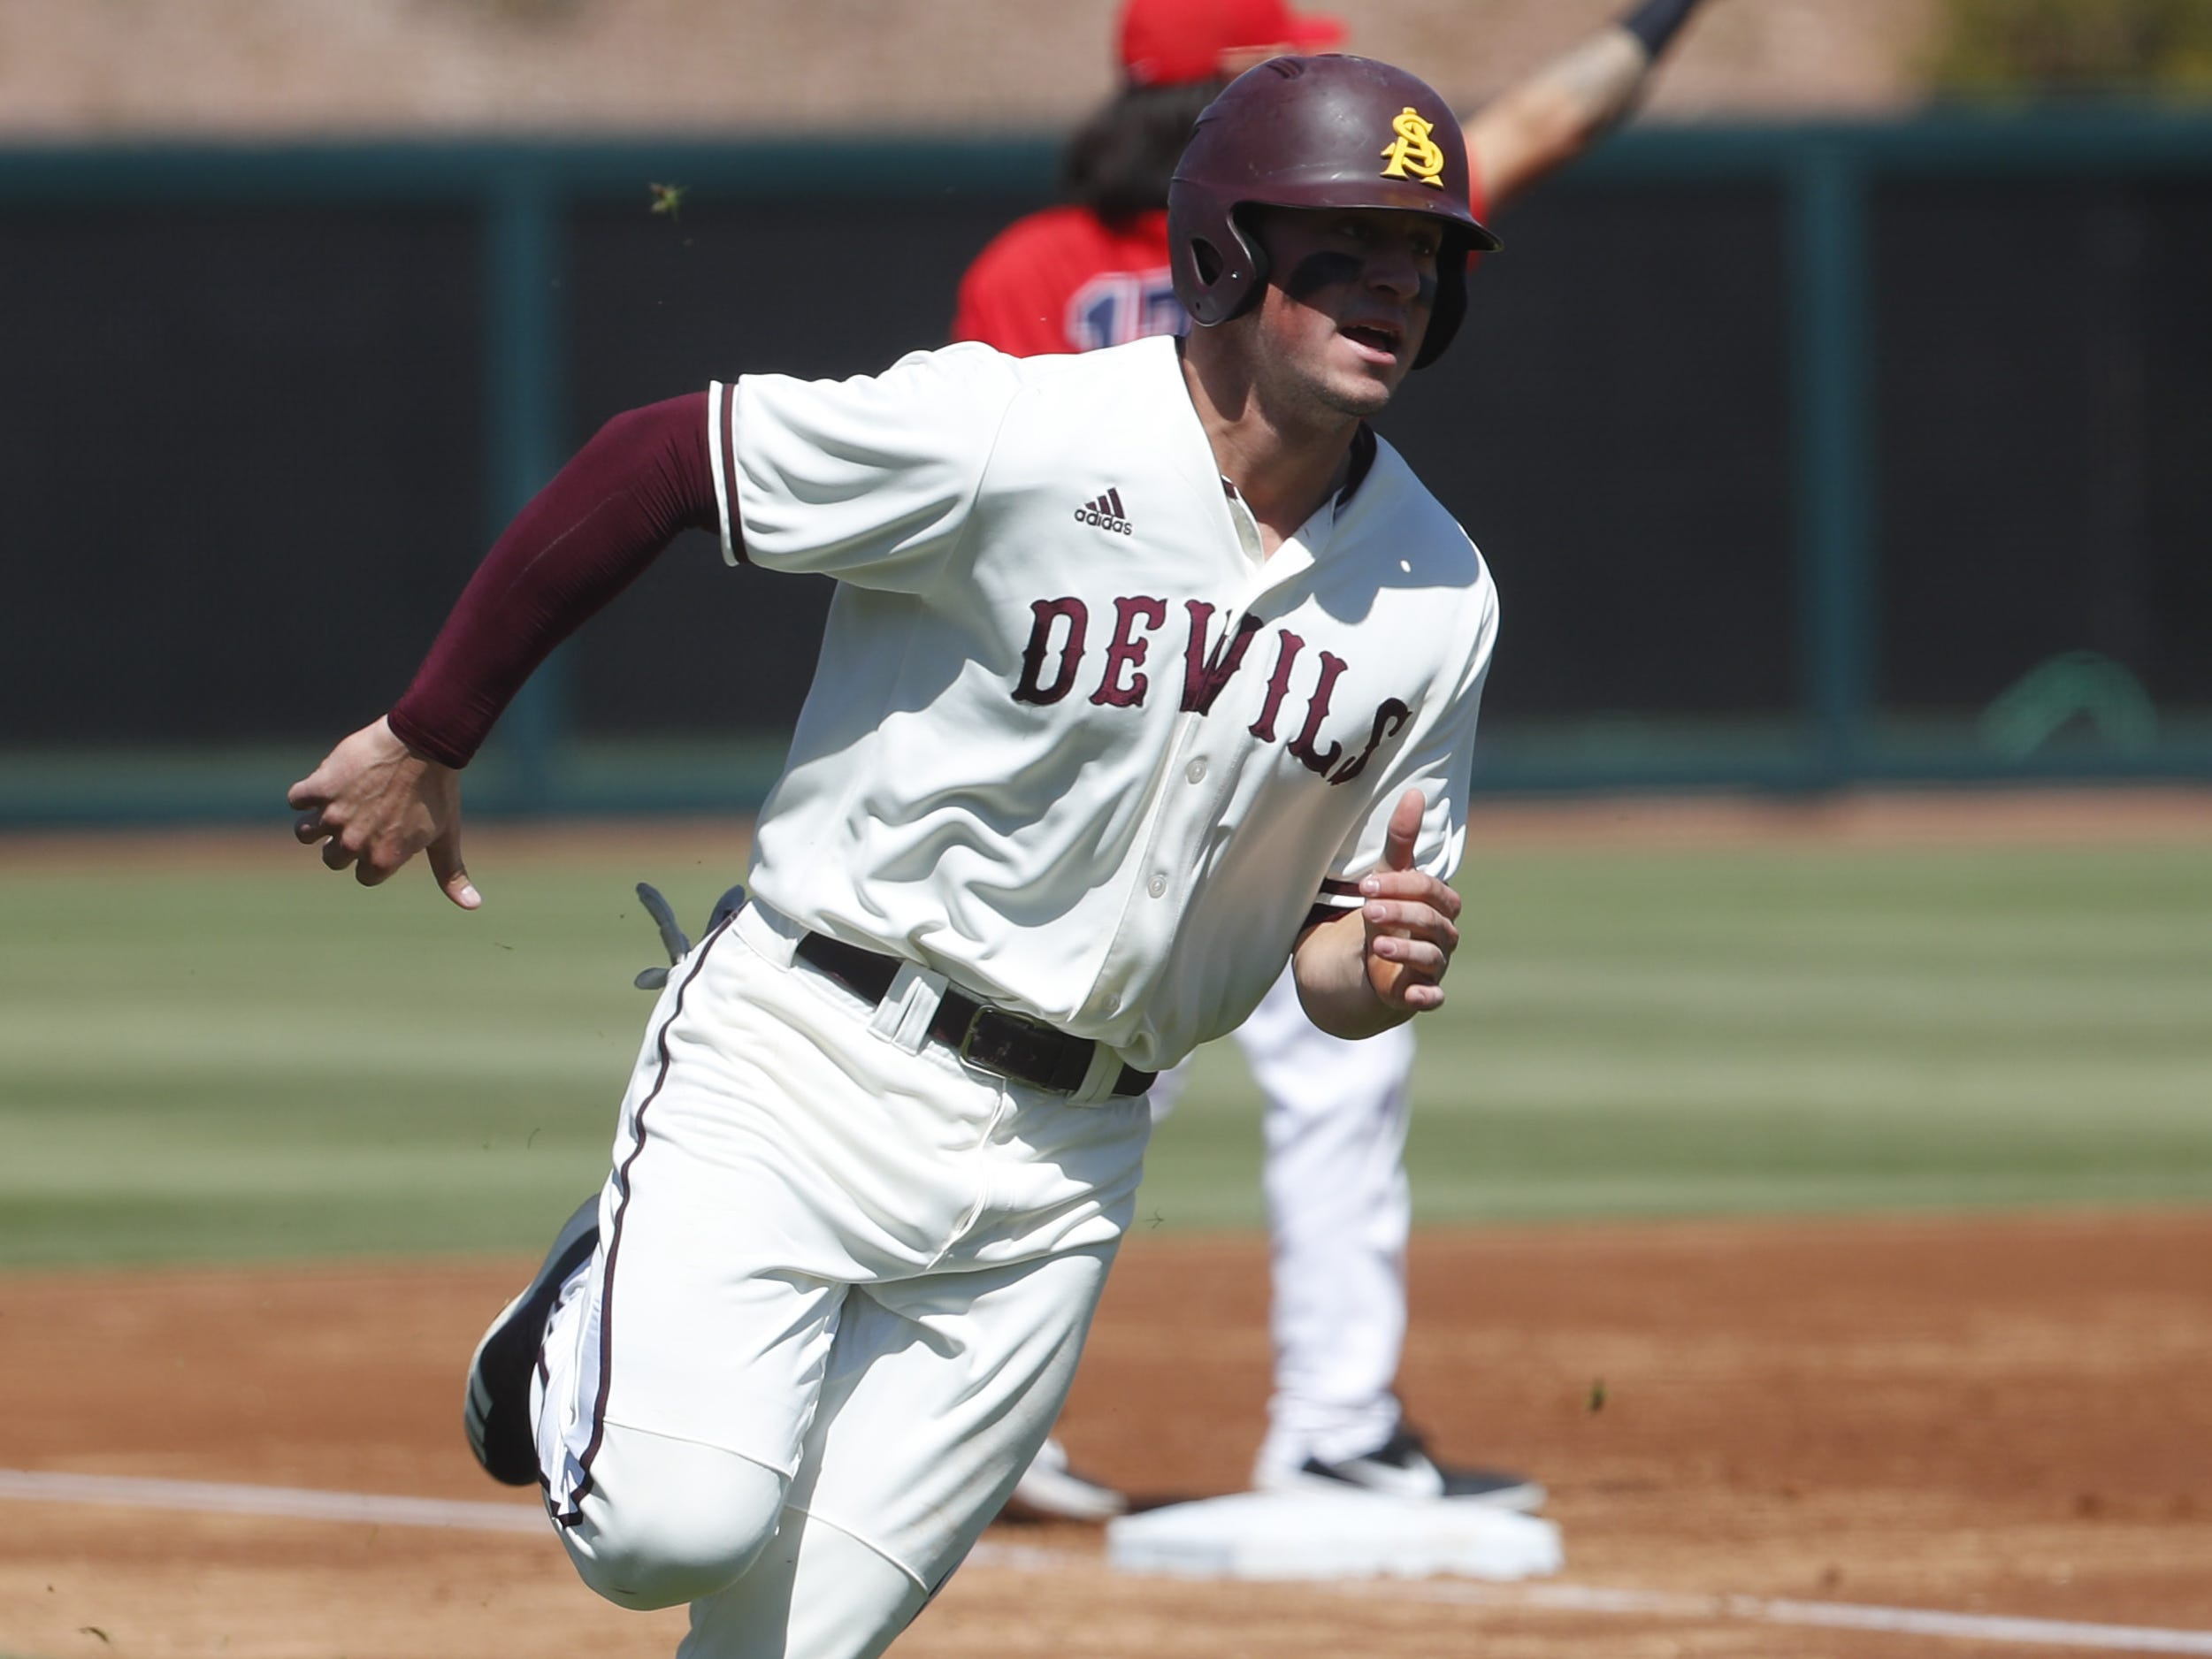 ASU's Spencer Torkelson (20) scores against Arizona during a game at Phoenix Municipal Stadium in Phoenix, Ariz. on March 30, 2019.